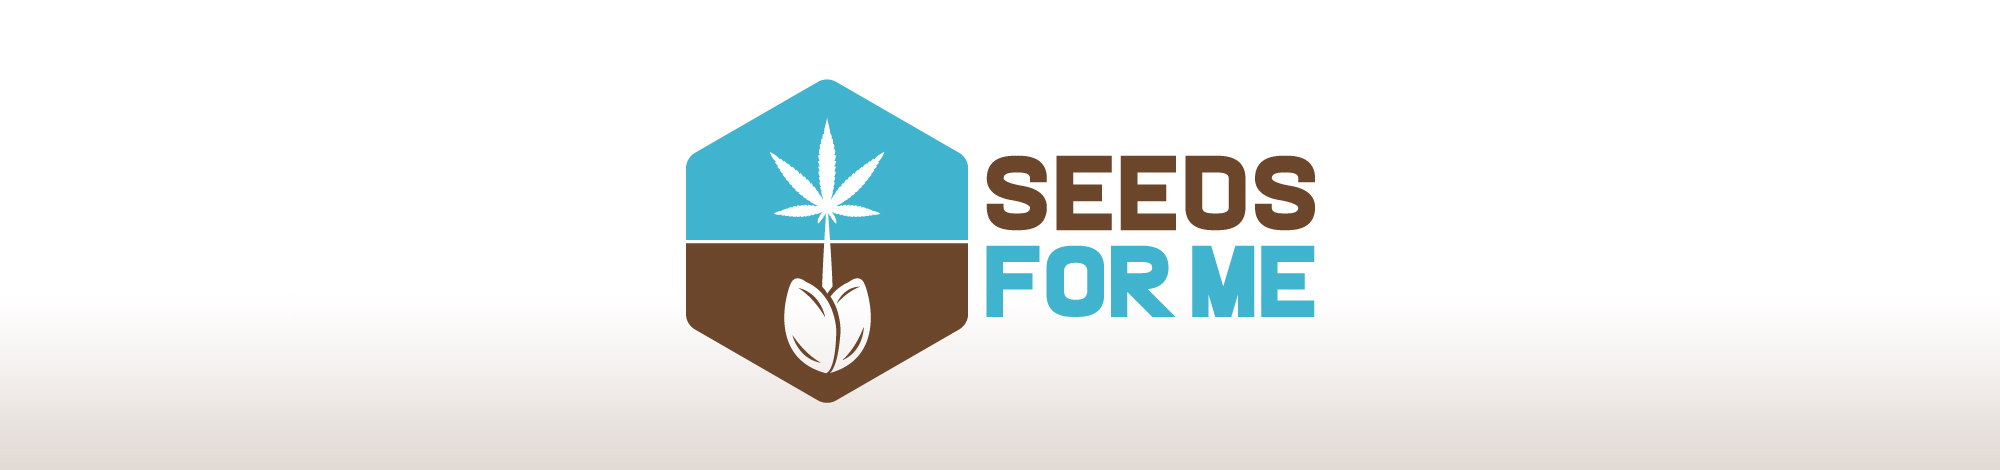 Your trusted US seed bank specializing in cannabis seeds